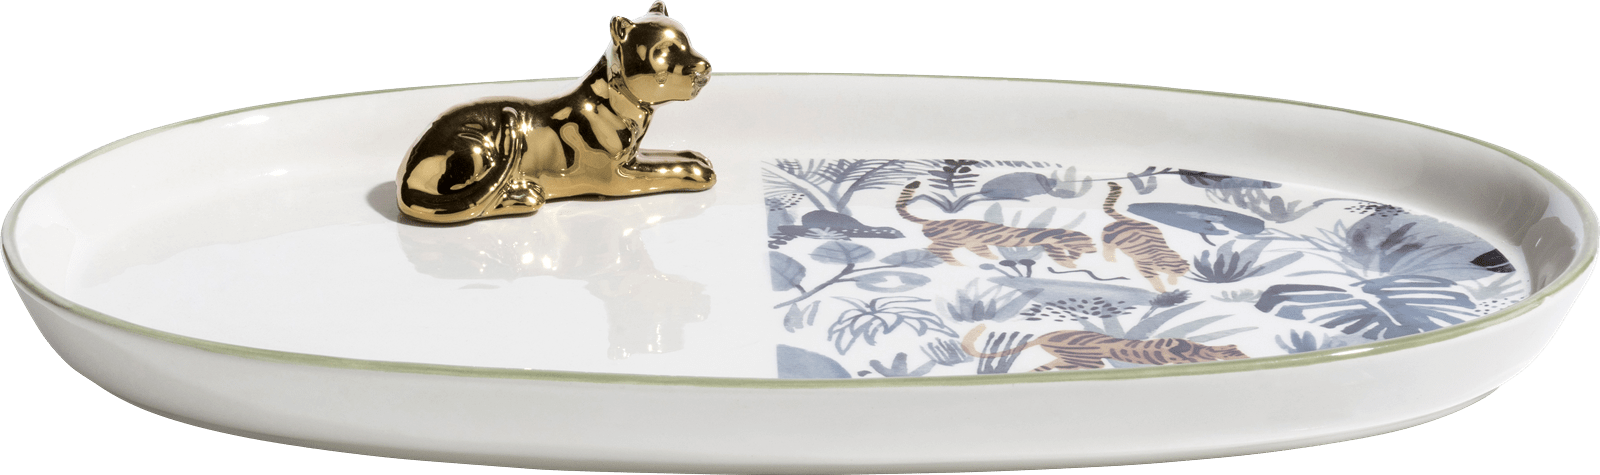 Coco Maison - bowl tiger lilly - height 7 cm